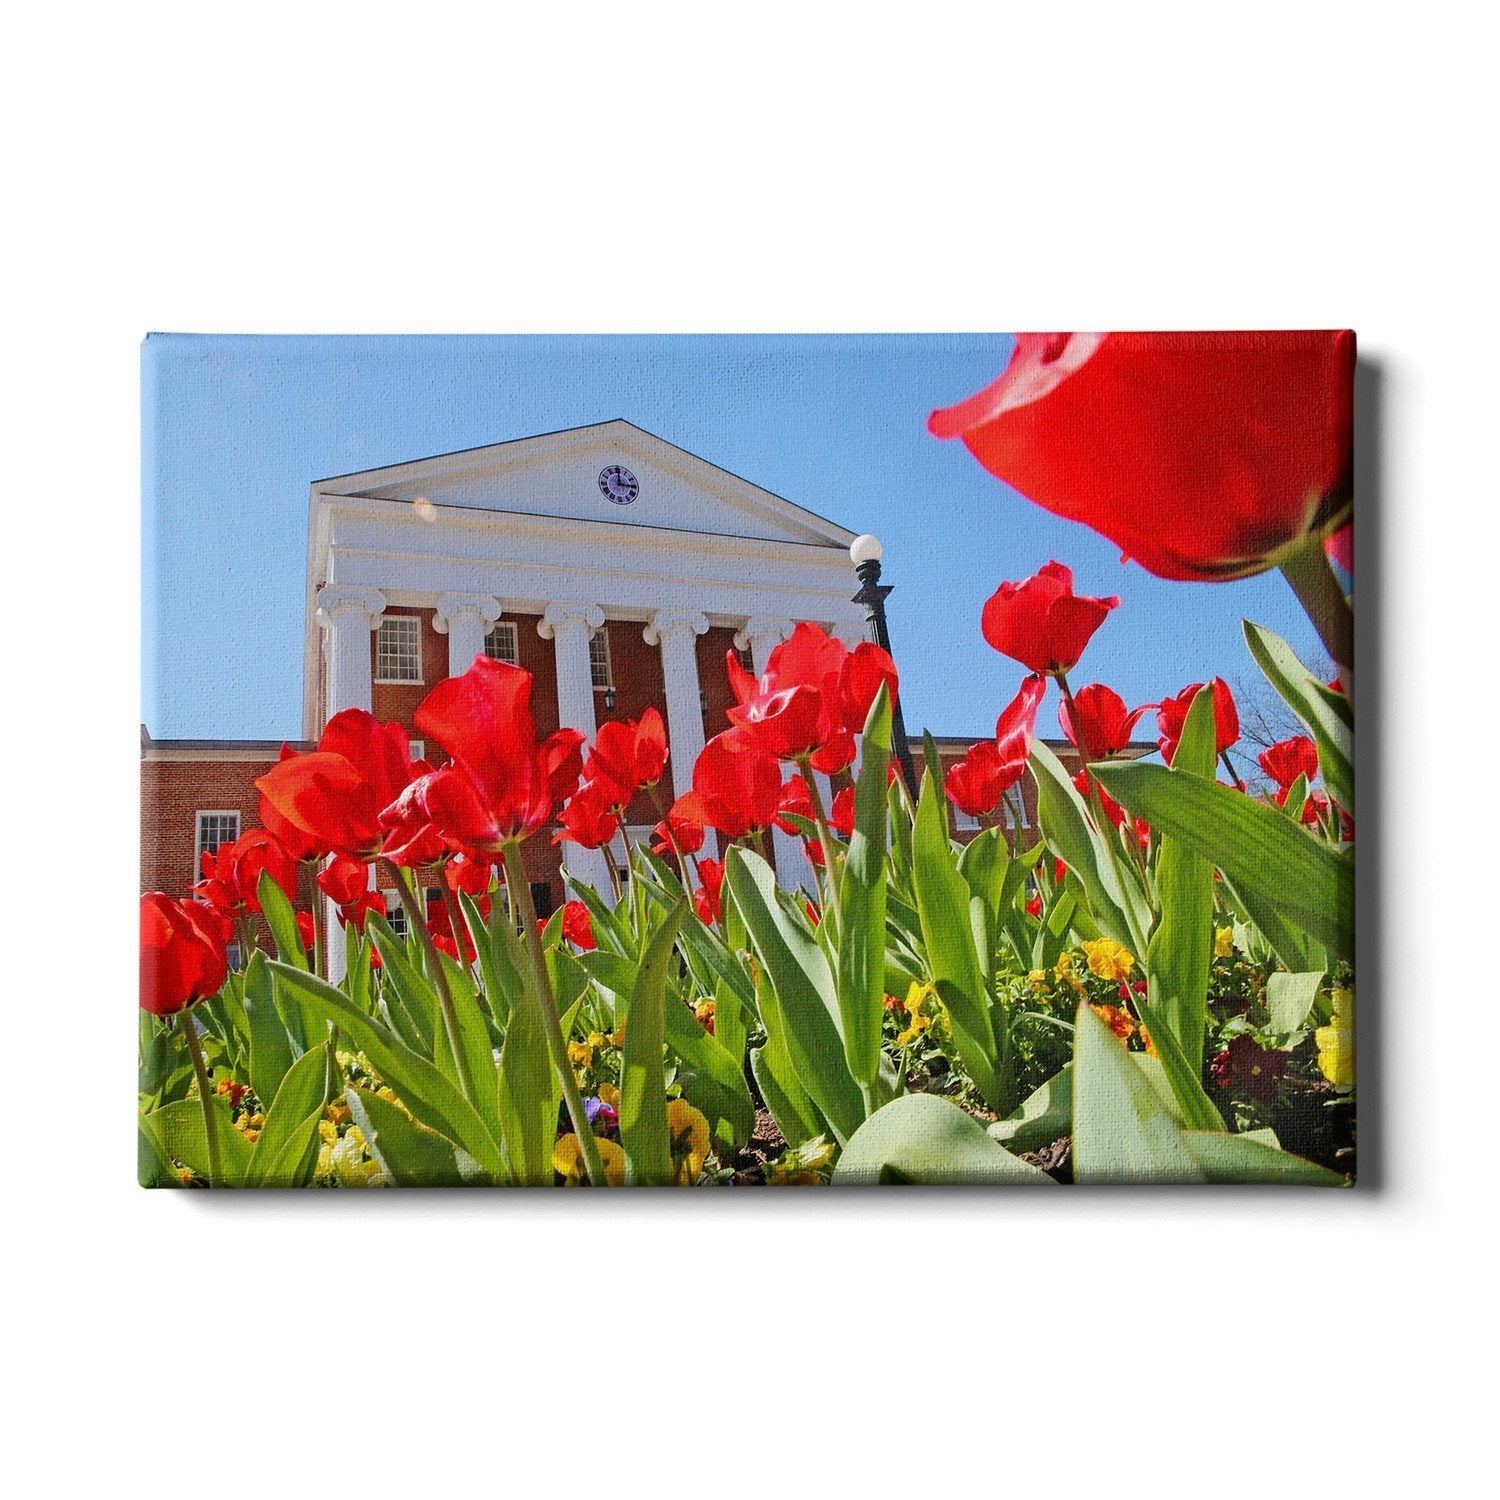 Ole Miss Rebels - Spring Lyceum - College Wall Art #Canvas